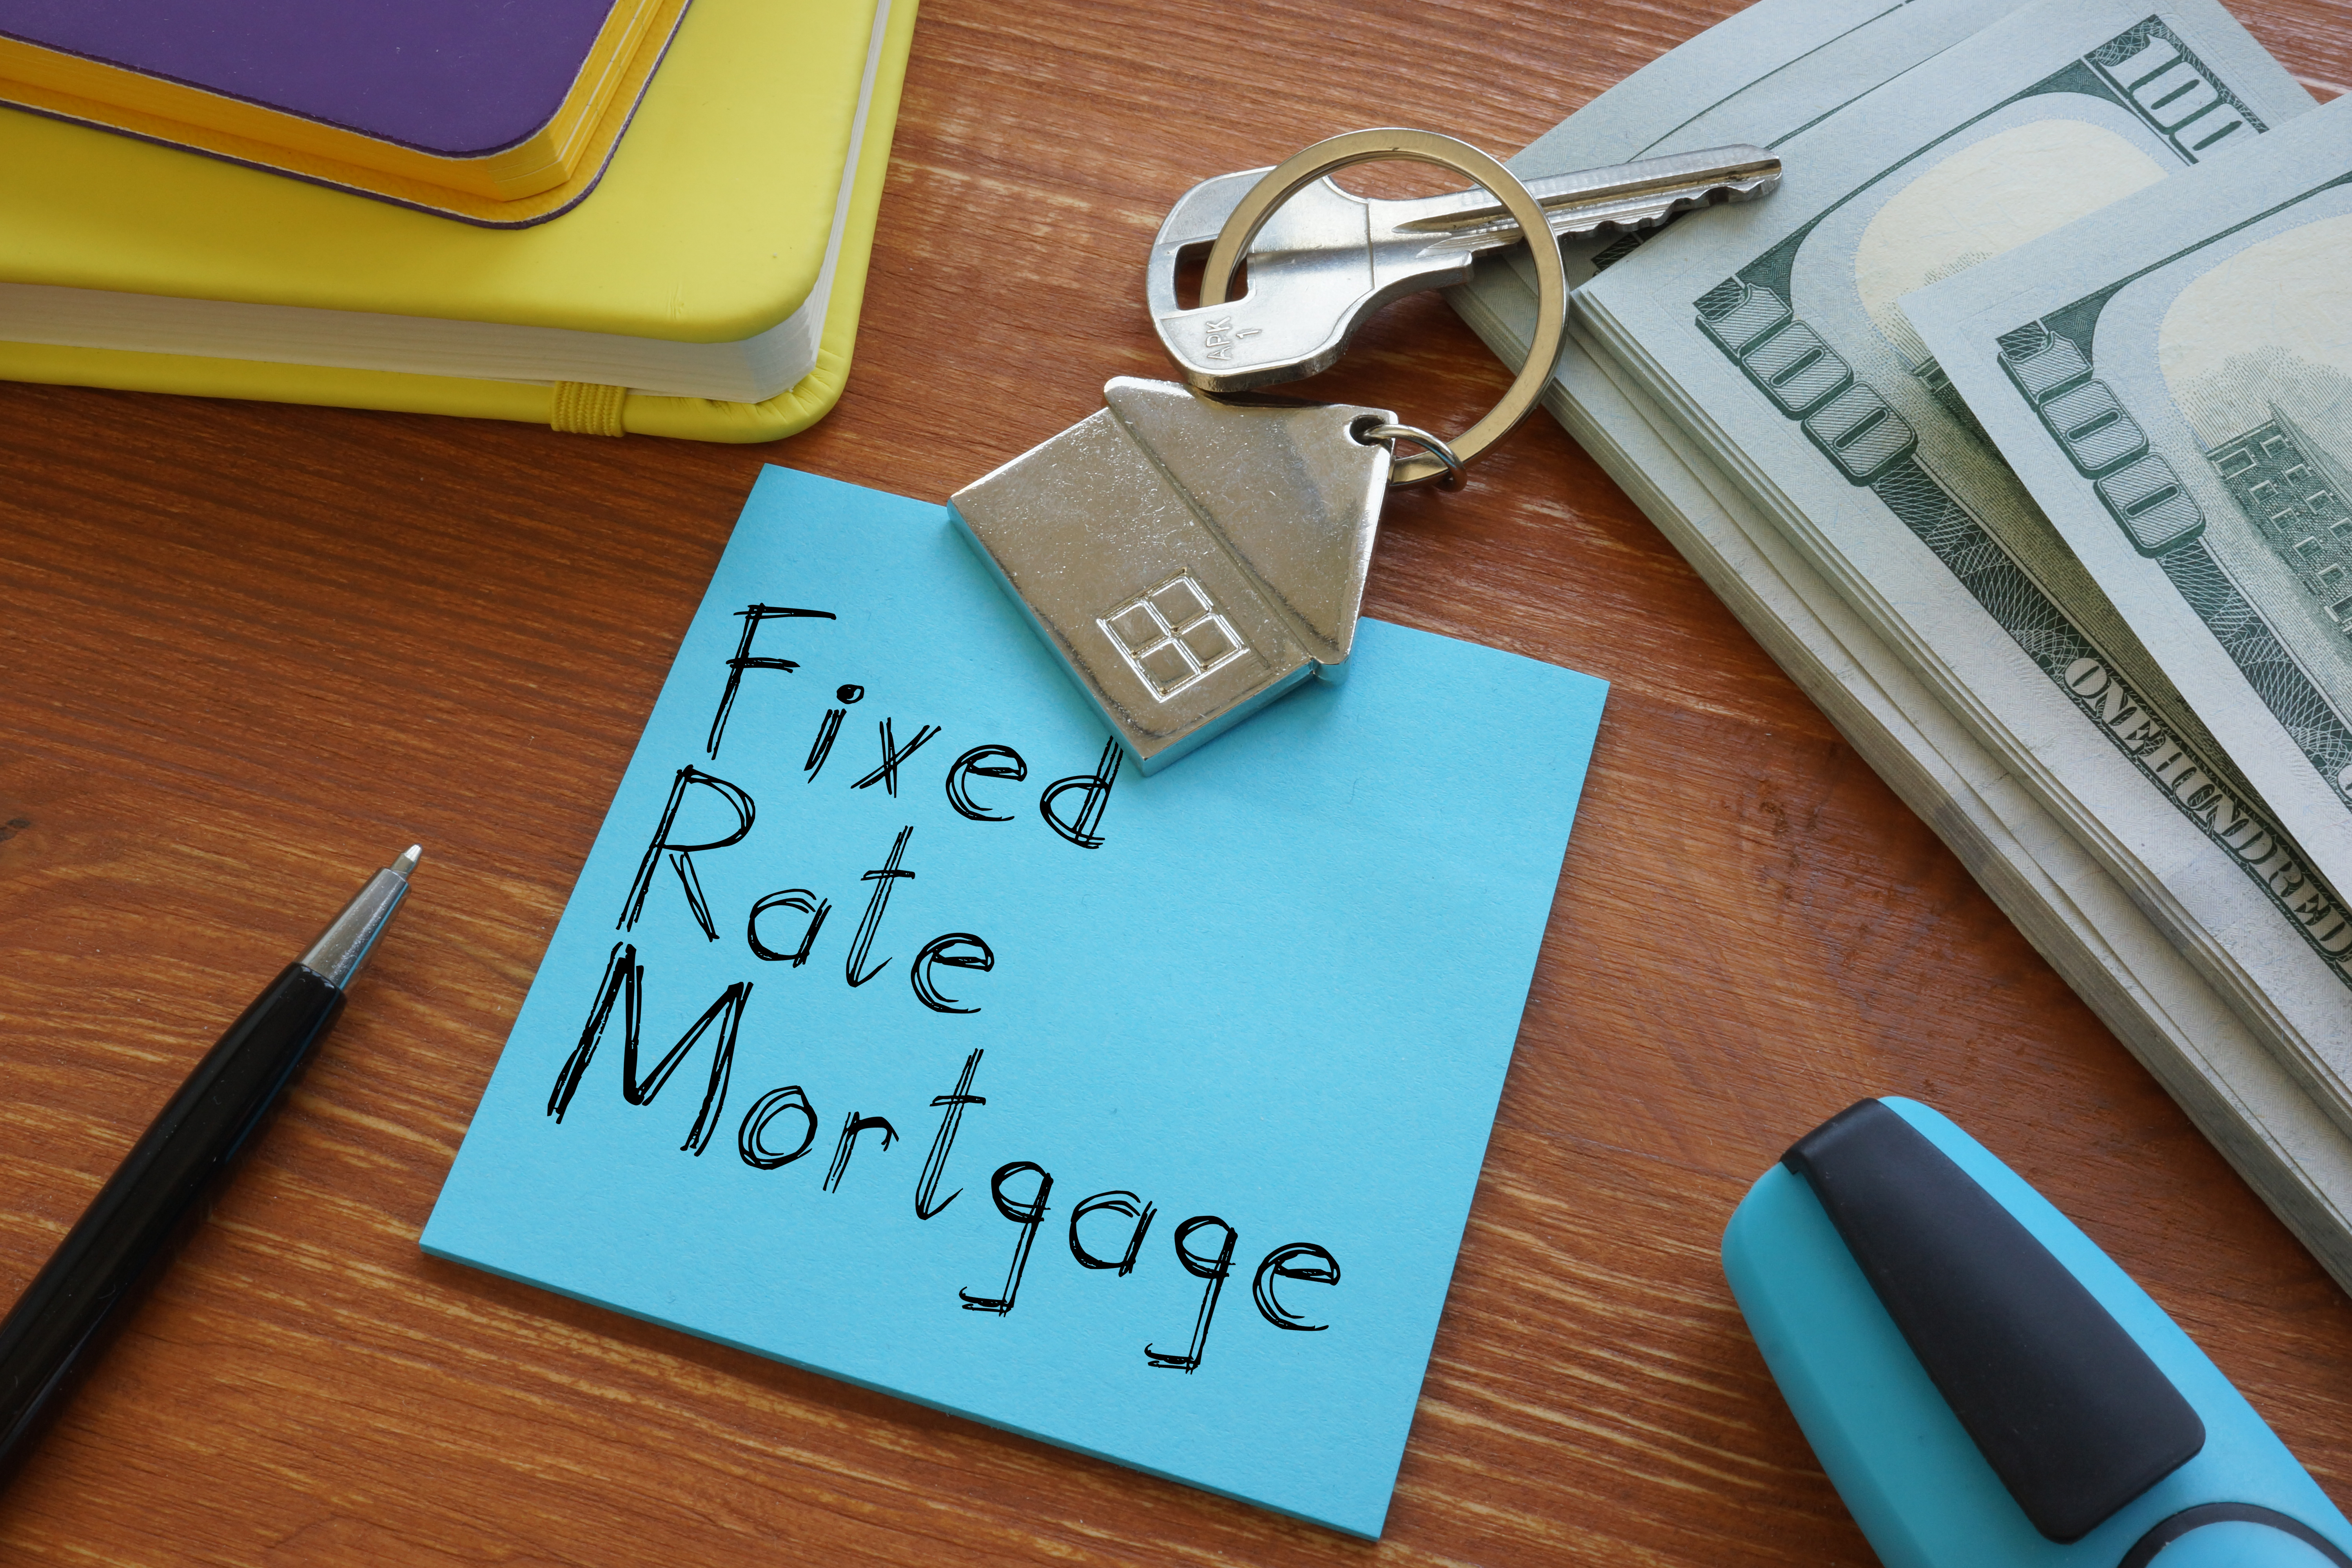 Fixed rate mortgage is shown on the conceptual business photo